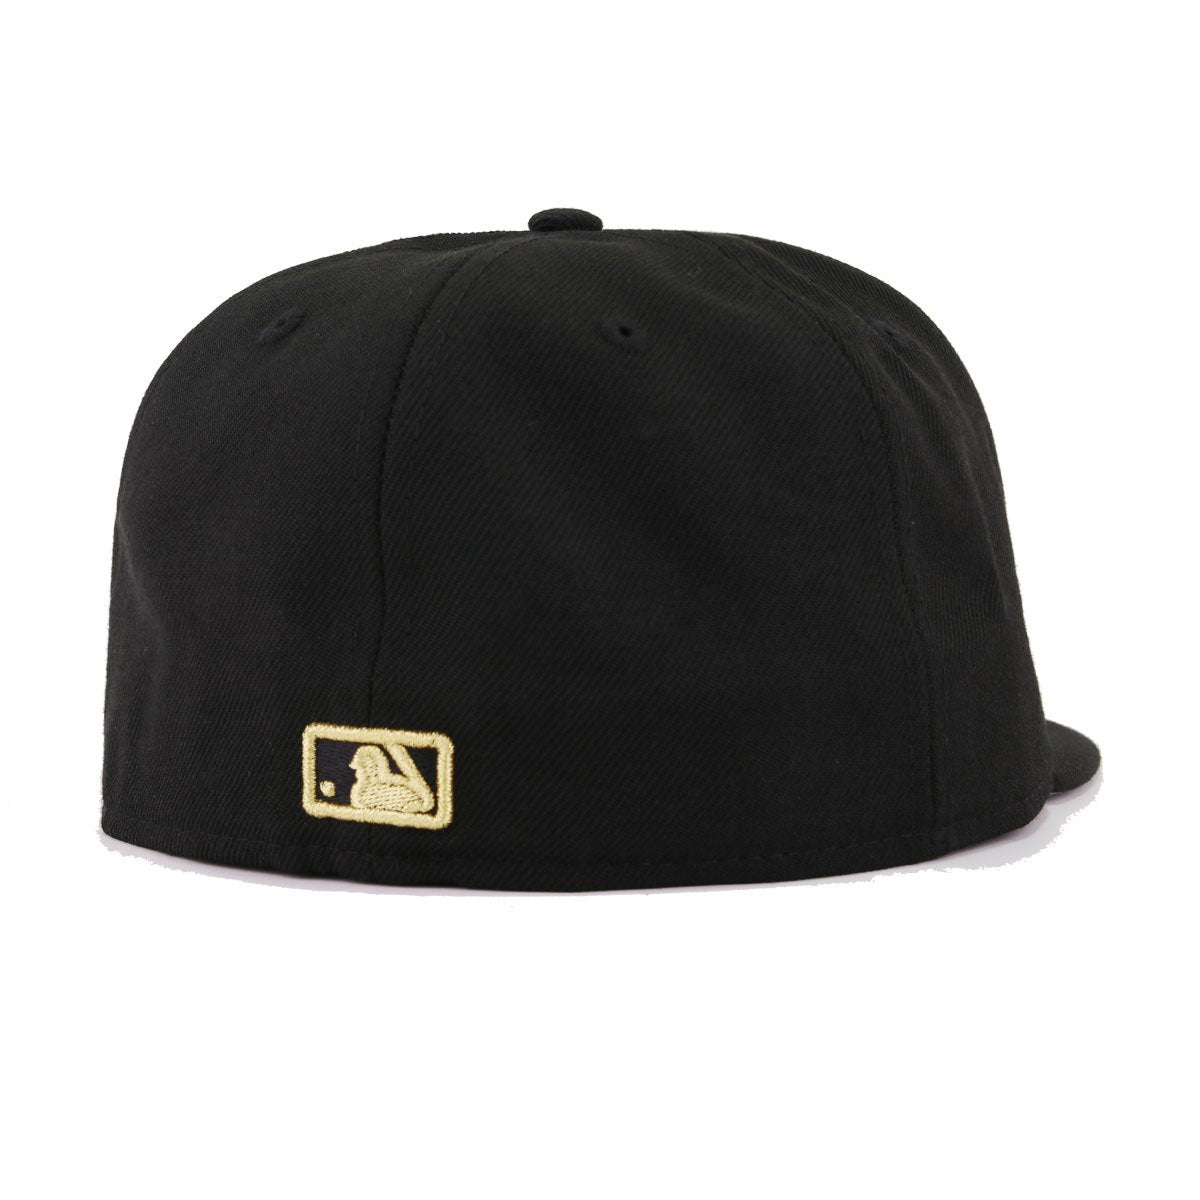 New York Yankees Black Gold Metal Badge New Era 59Fifty Fitted